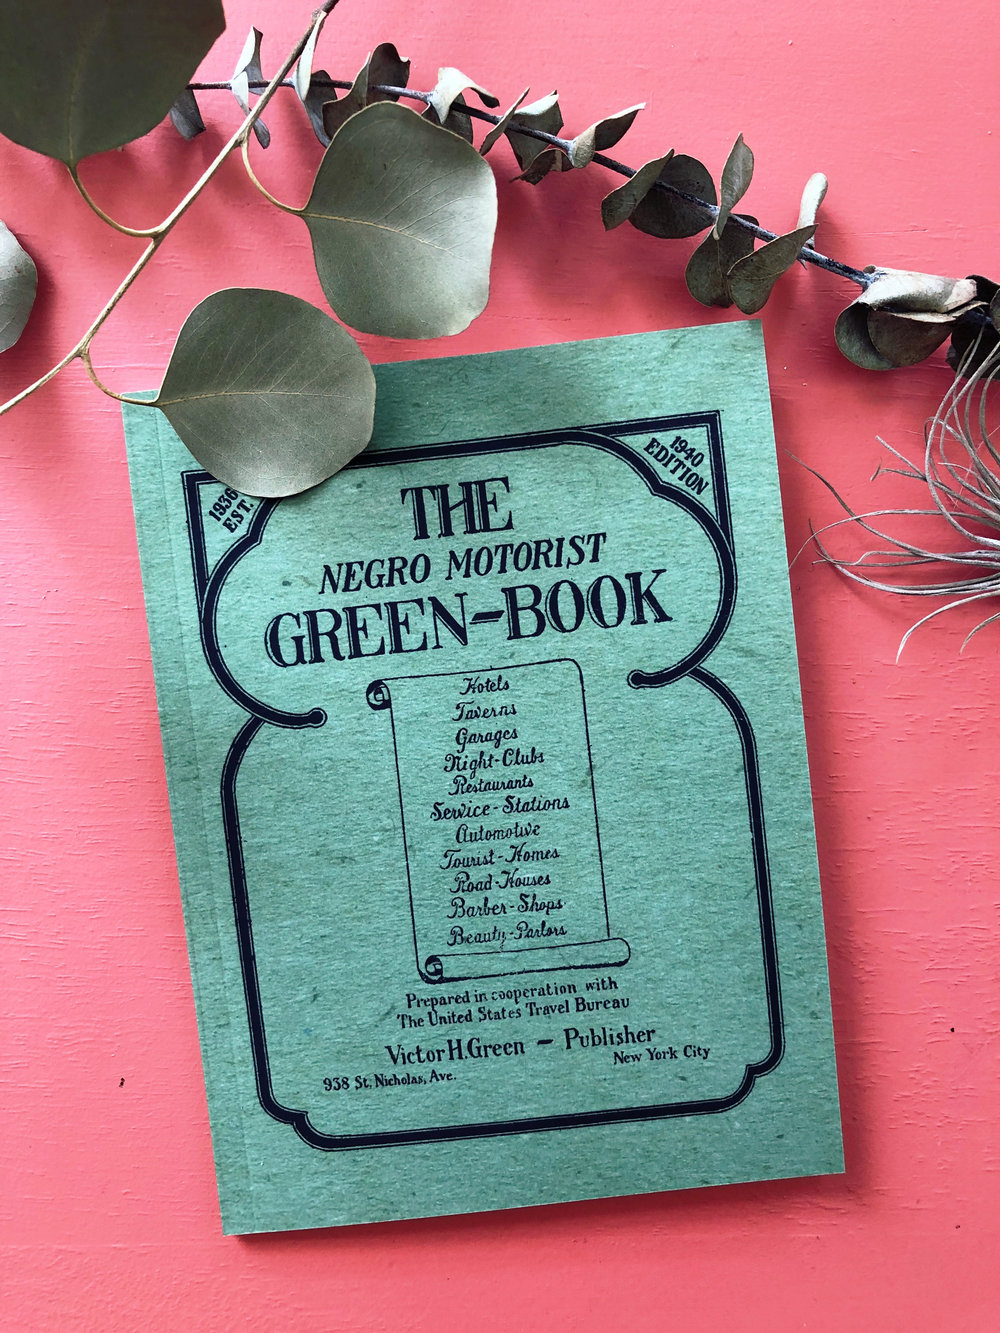 "The   Green Book   was the quintessential guide for African Americans traveling the road in the early 21st century, offering resources ""to give the Negro traveler information that will keep him from running into difficulties, embarrassments and to make his trip more enjoyable."" The book was created by Victor H. Green, a mailman-turned-publisher-turned-travel-agent who sought to highlight  ""the growing affluence of African Americans."""